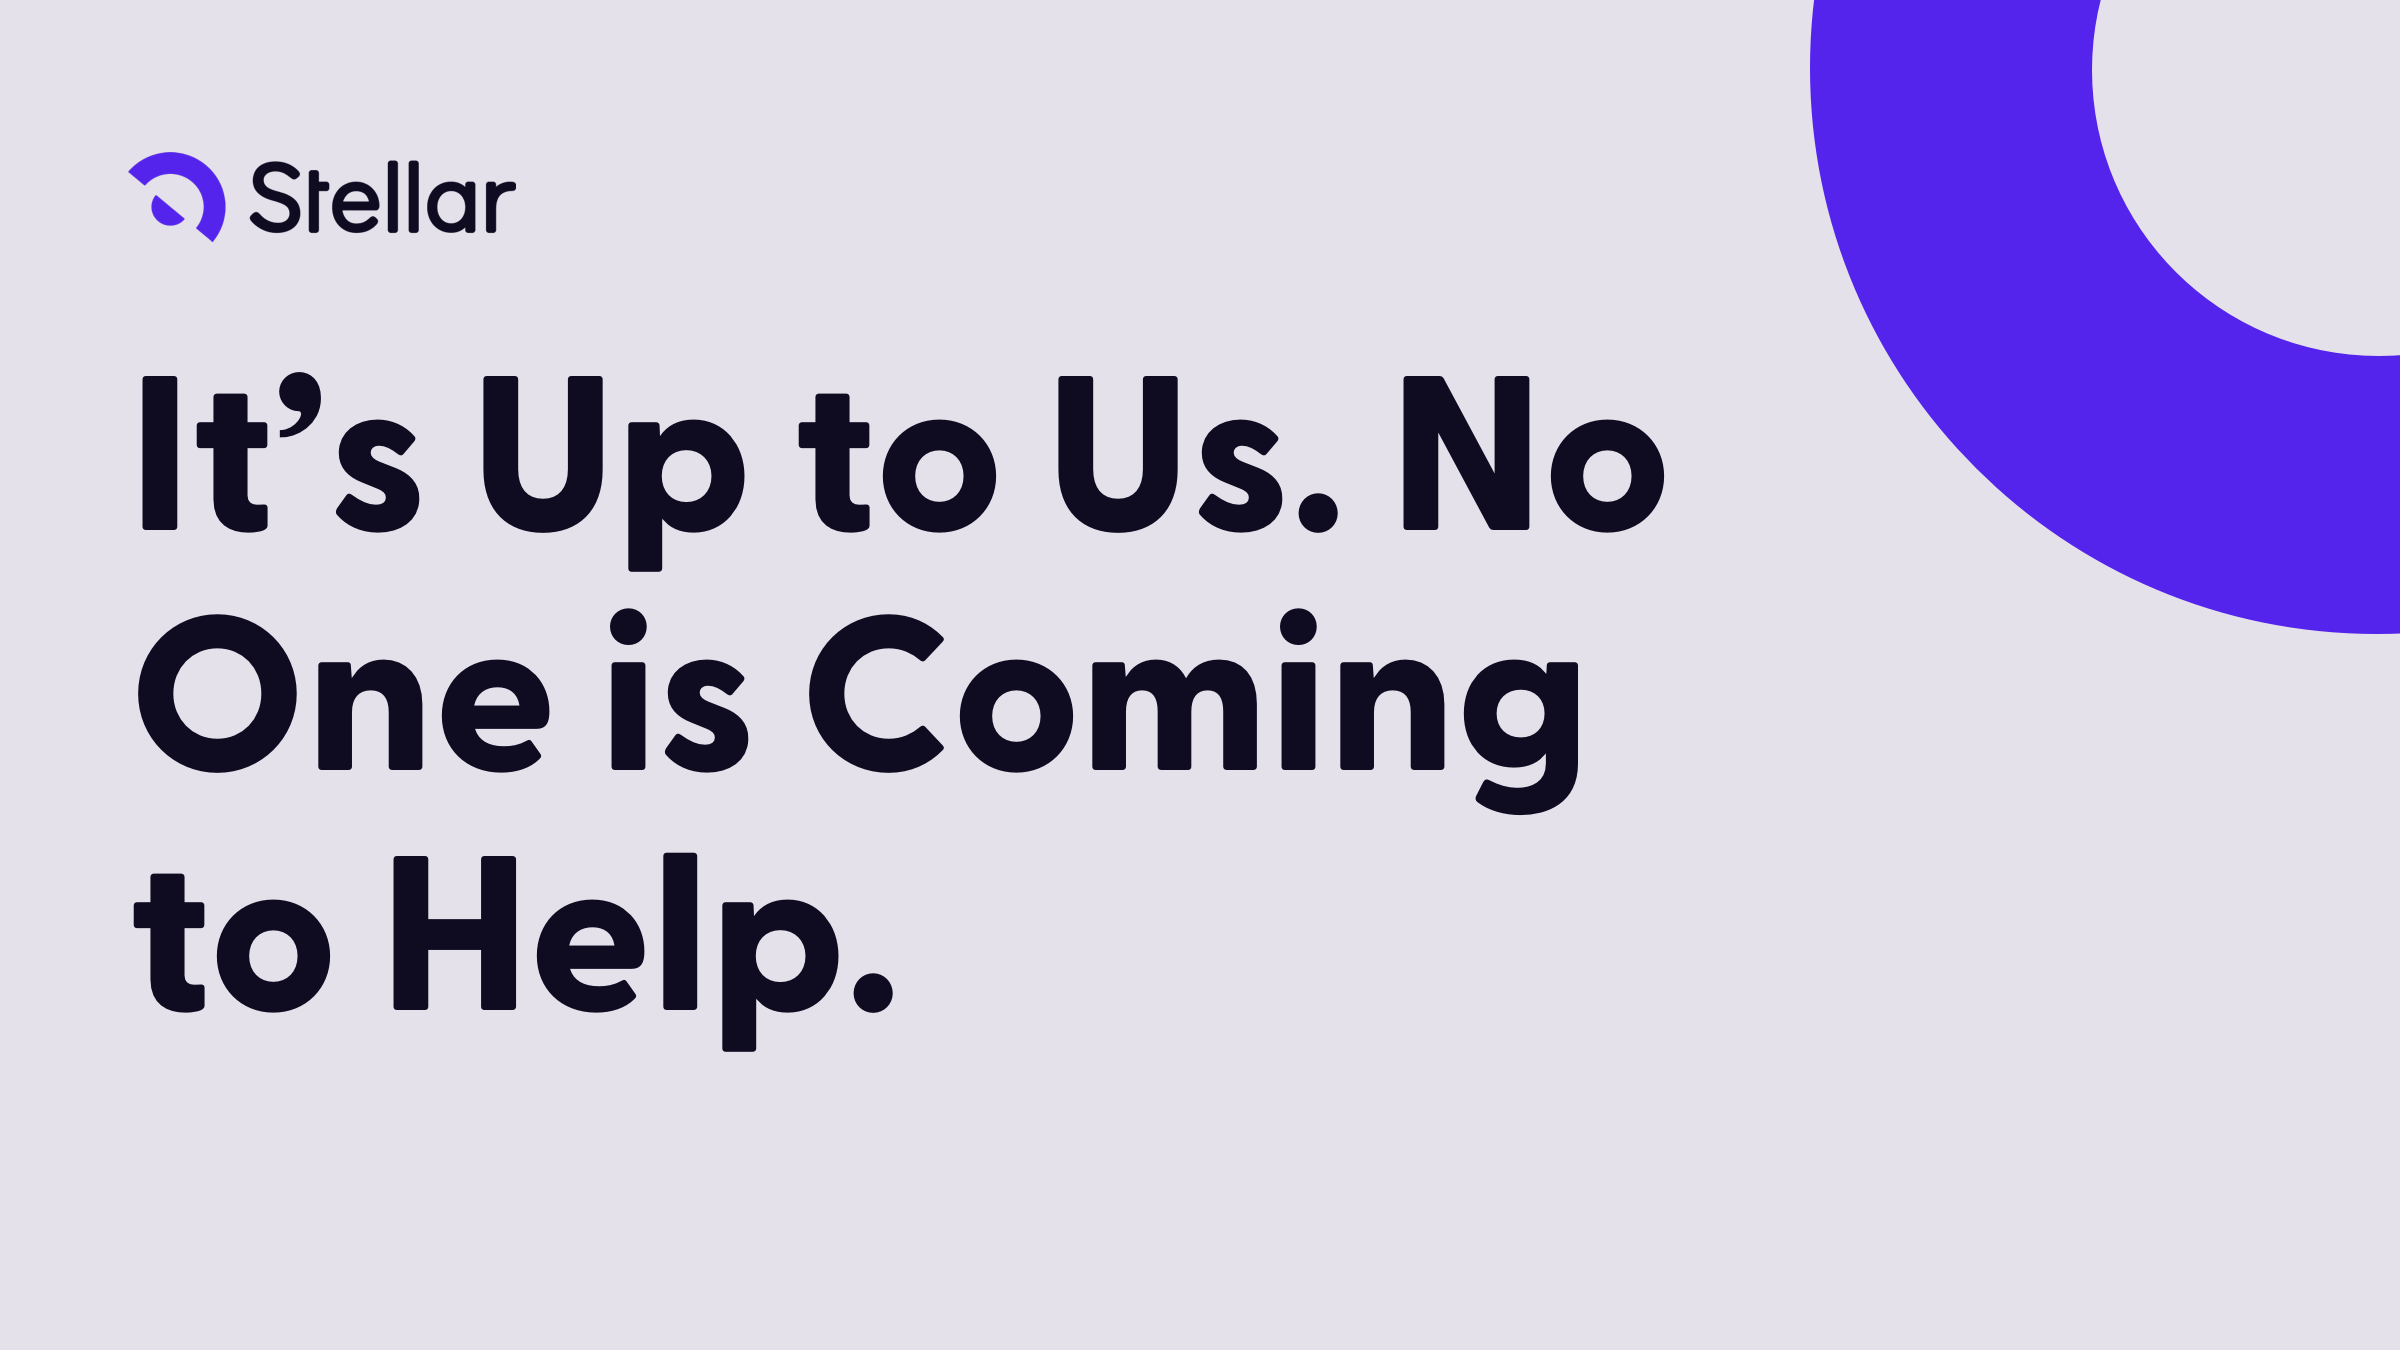 It's Up to Us. No One is Coming to Help.